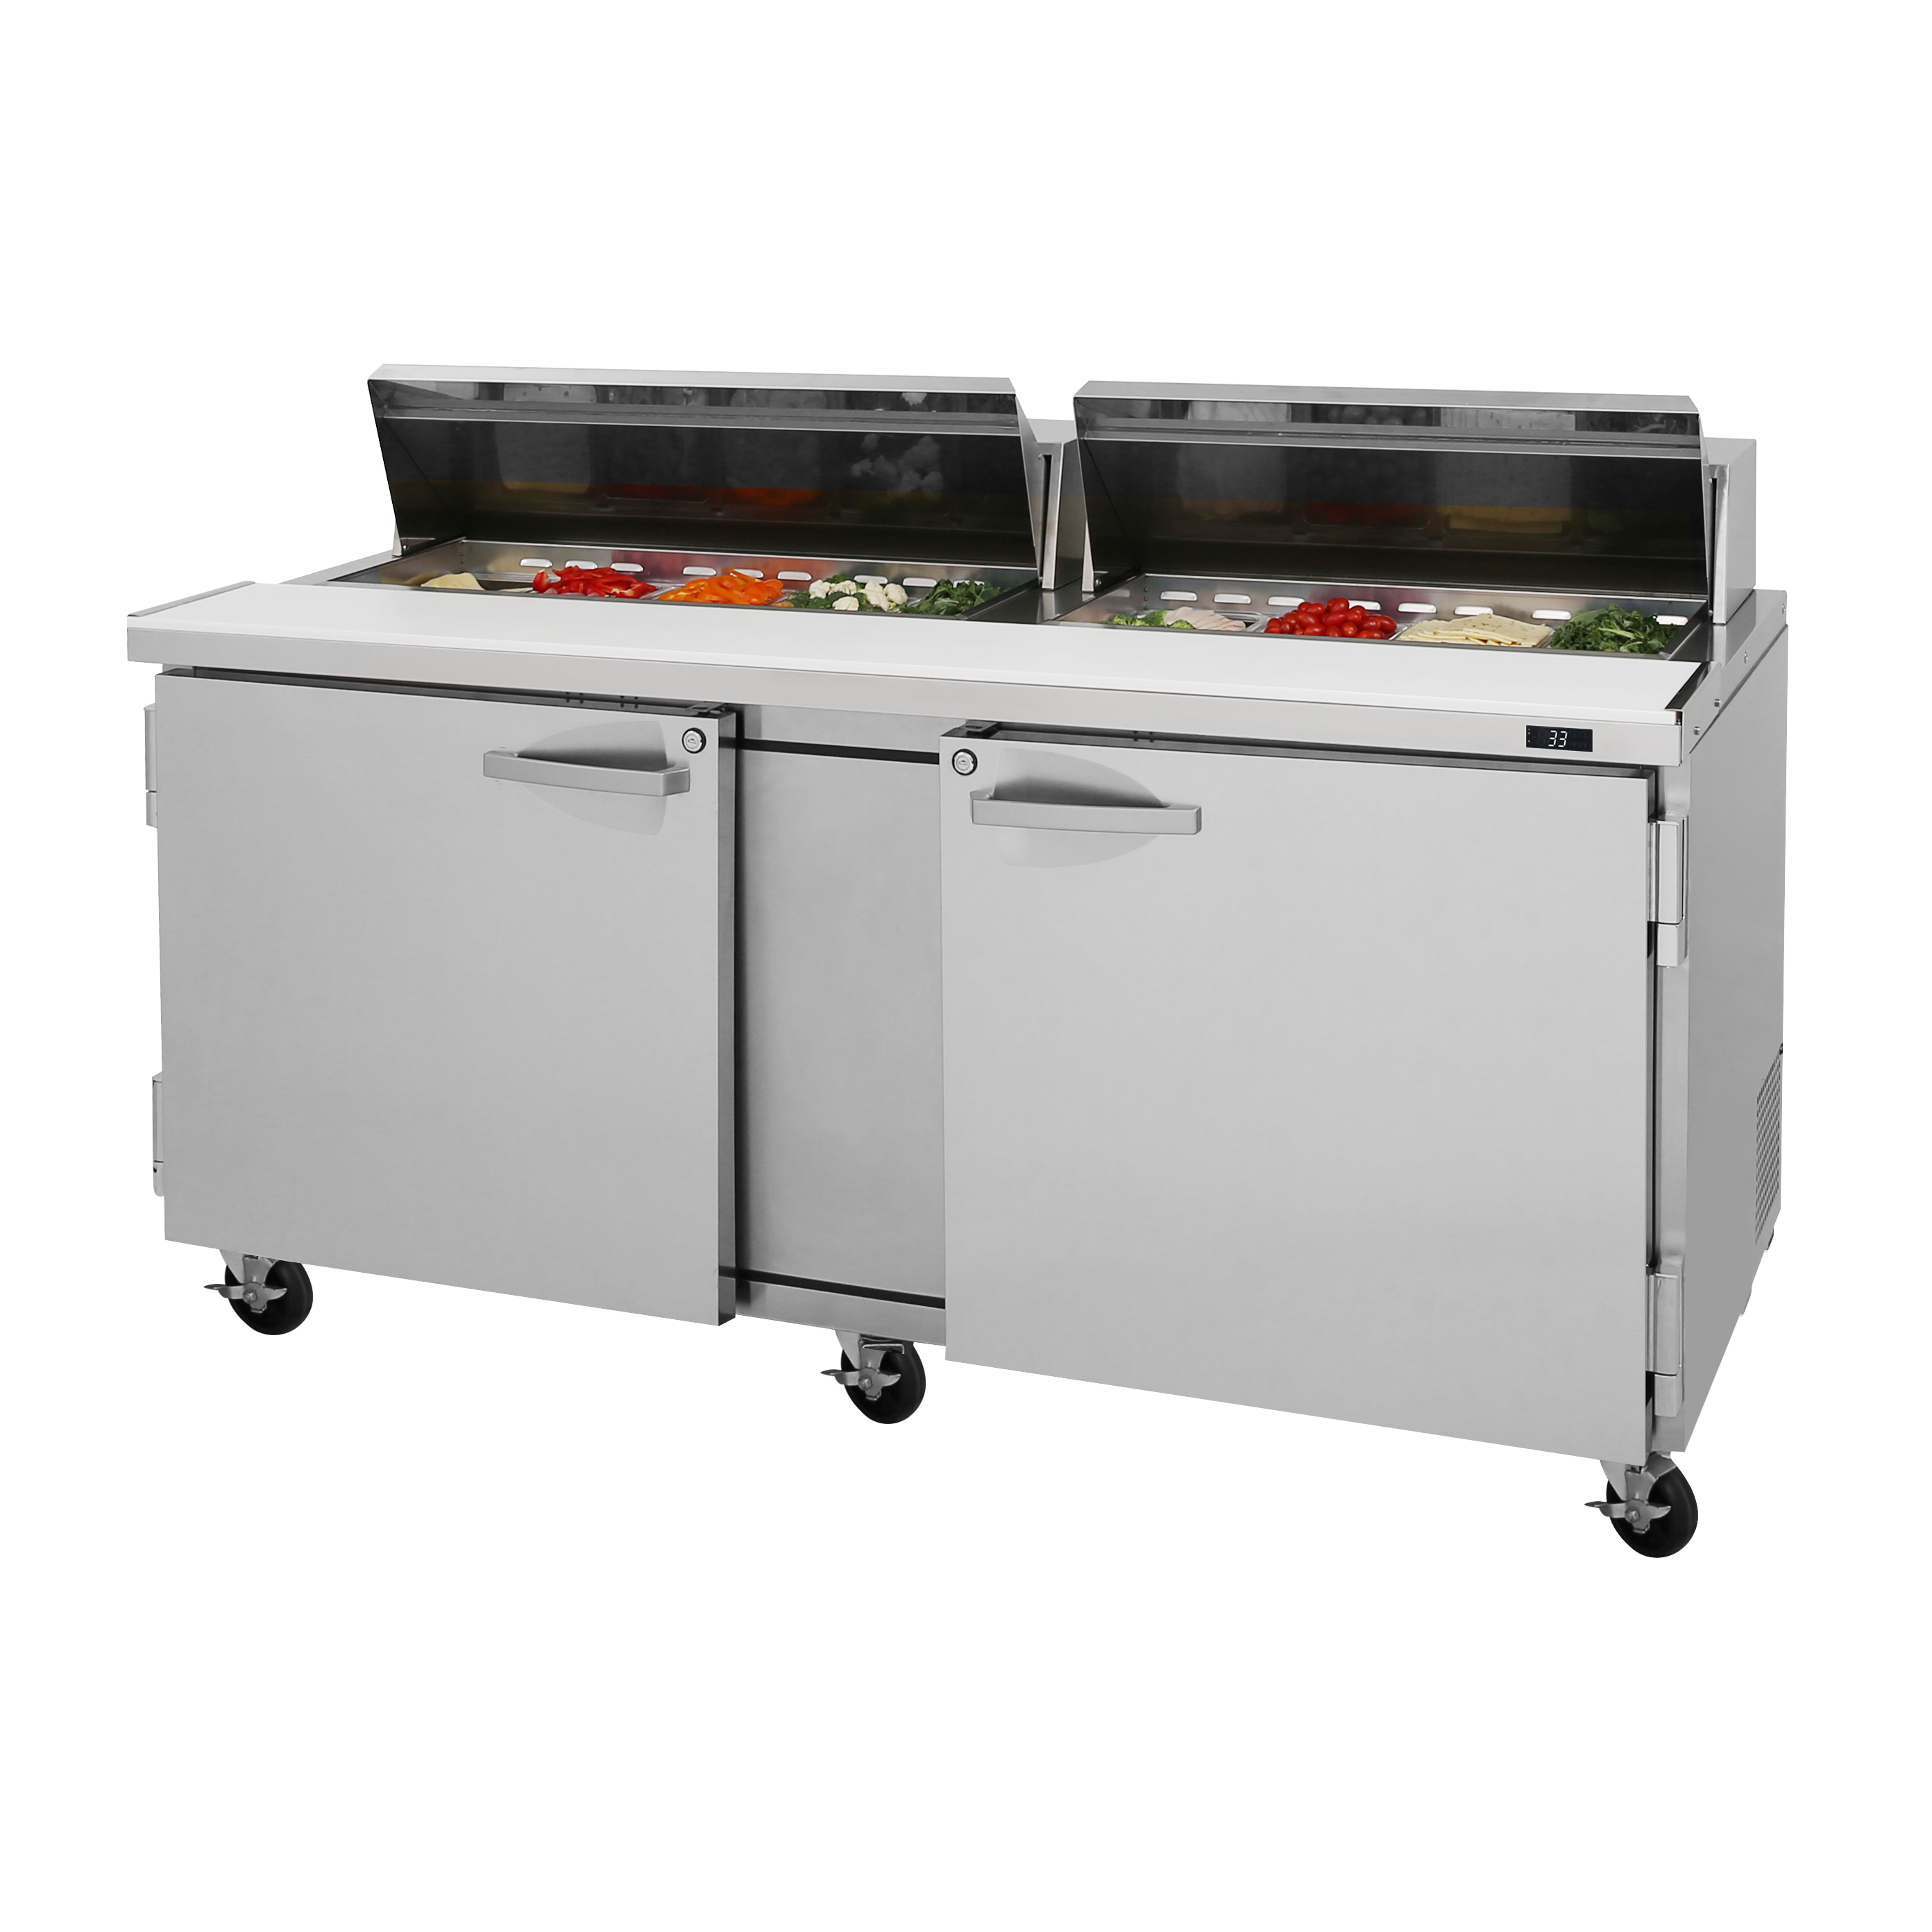 Turbo Air PST-72-N refrigerated counter, sandwich / salad unit